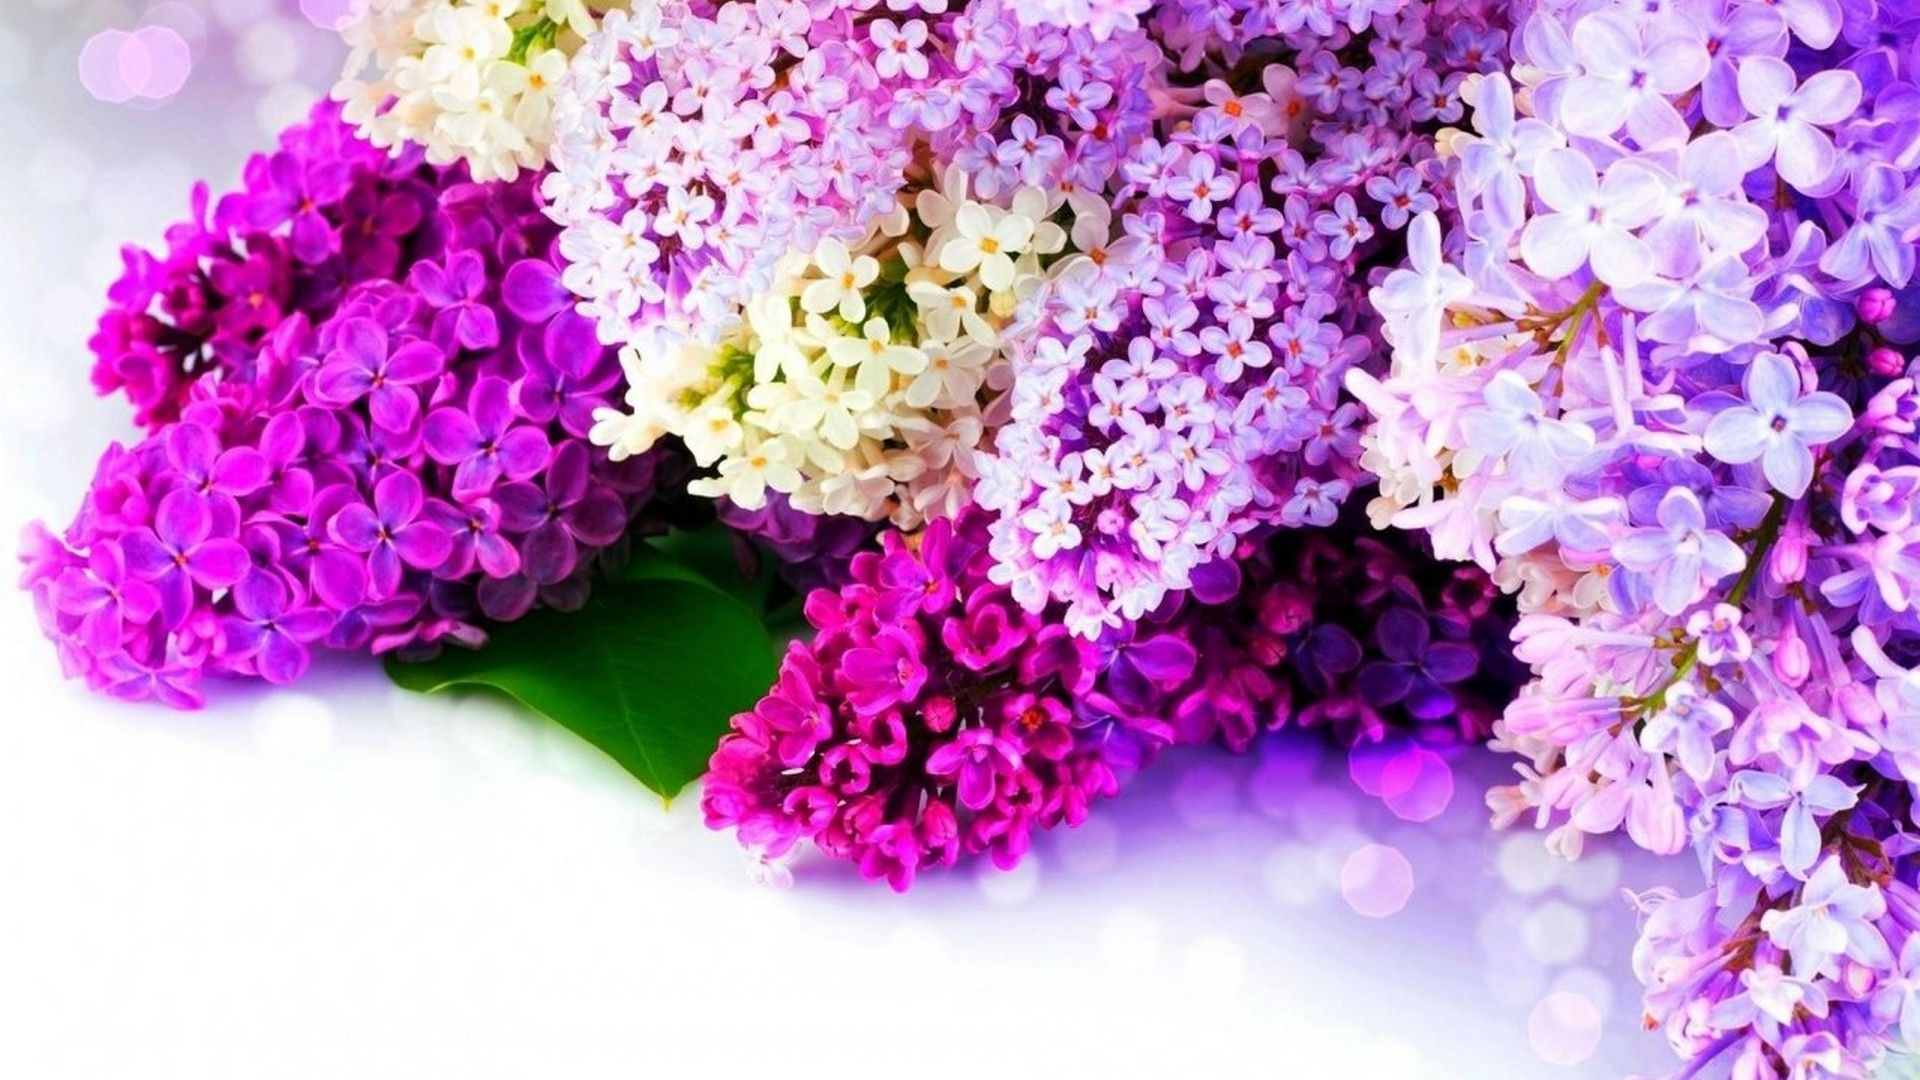 Wallpapers Spring Flowers 2020 Live Wallpaper Hd Flower Wallpaper Lilac Background Spring Flowers